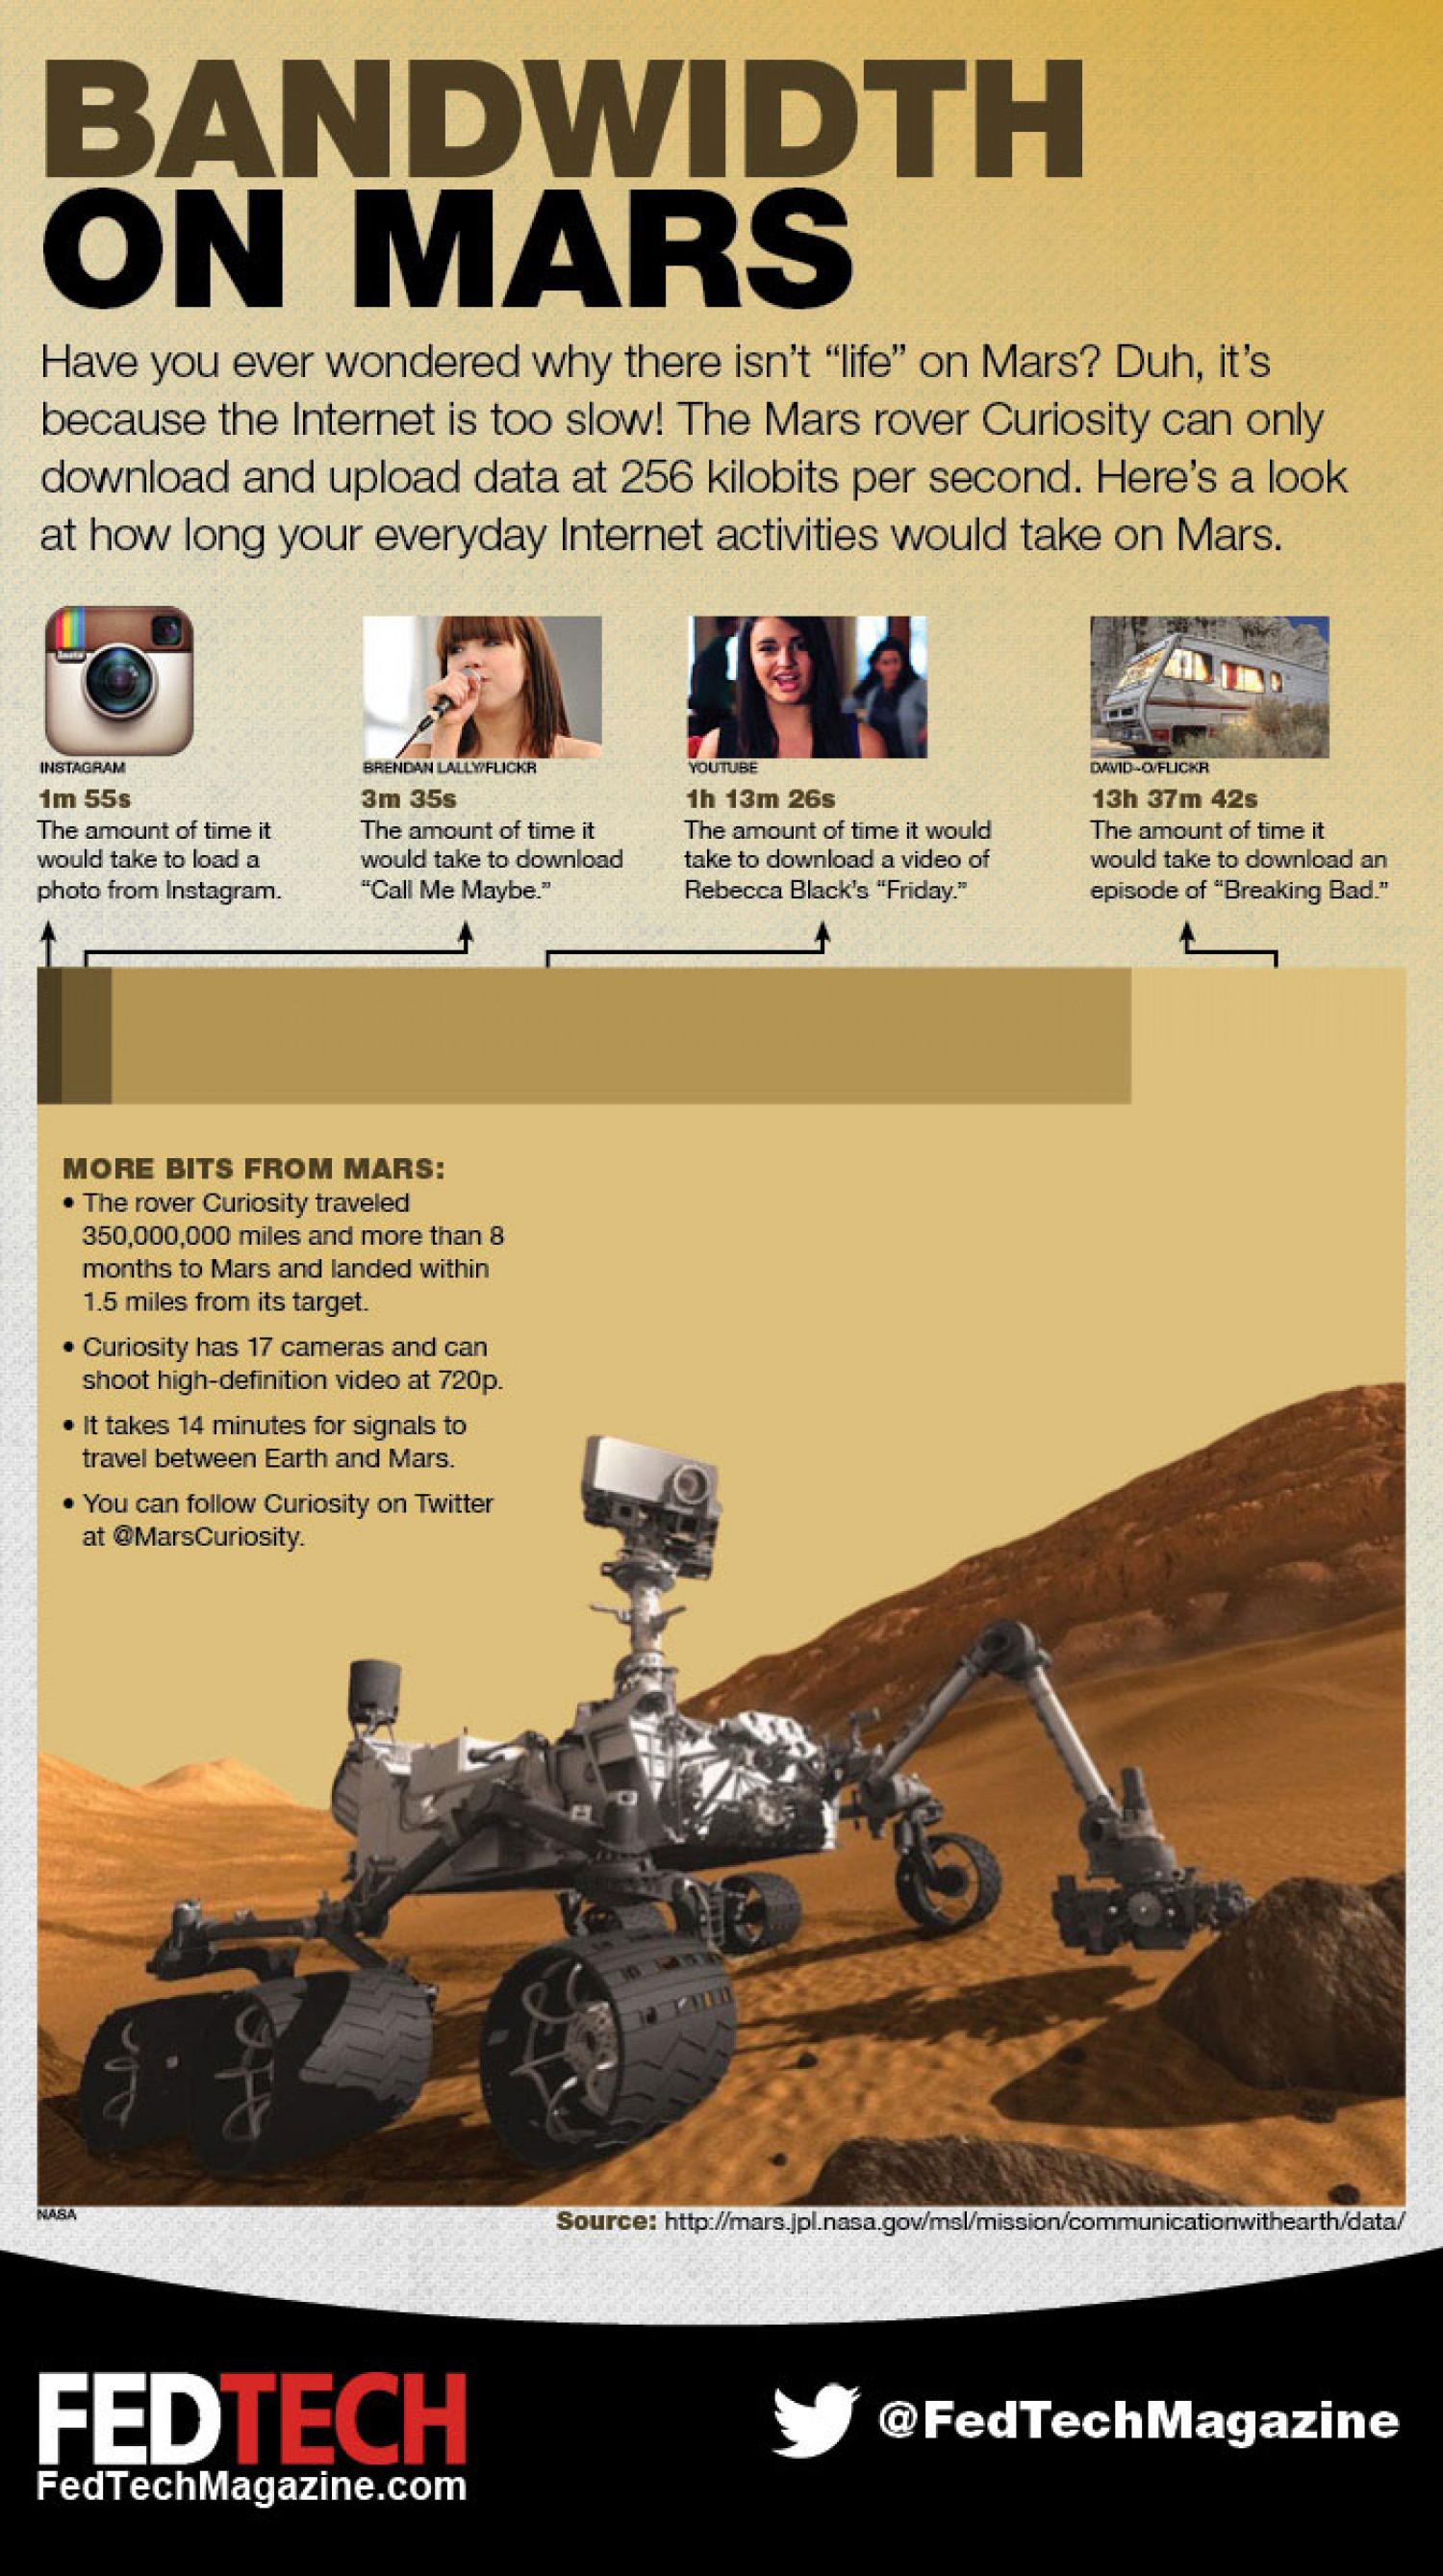 How fast is the Internet on Mars? Infographic